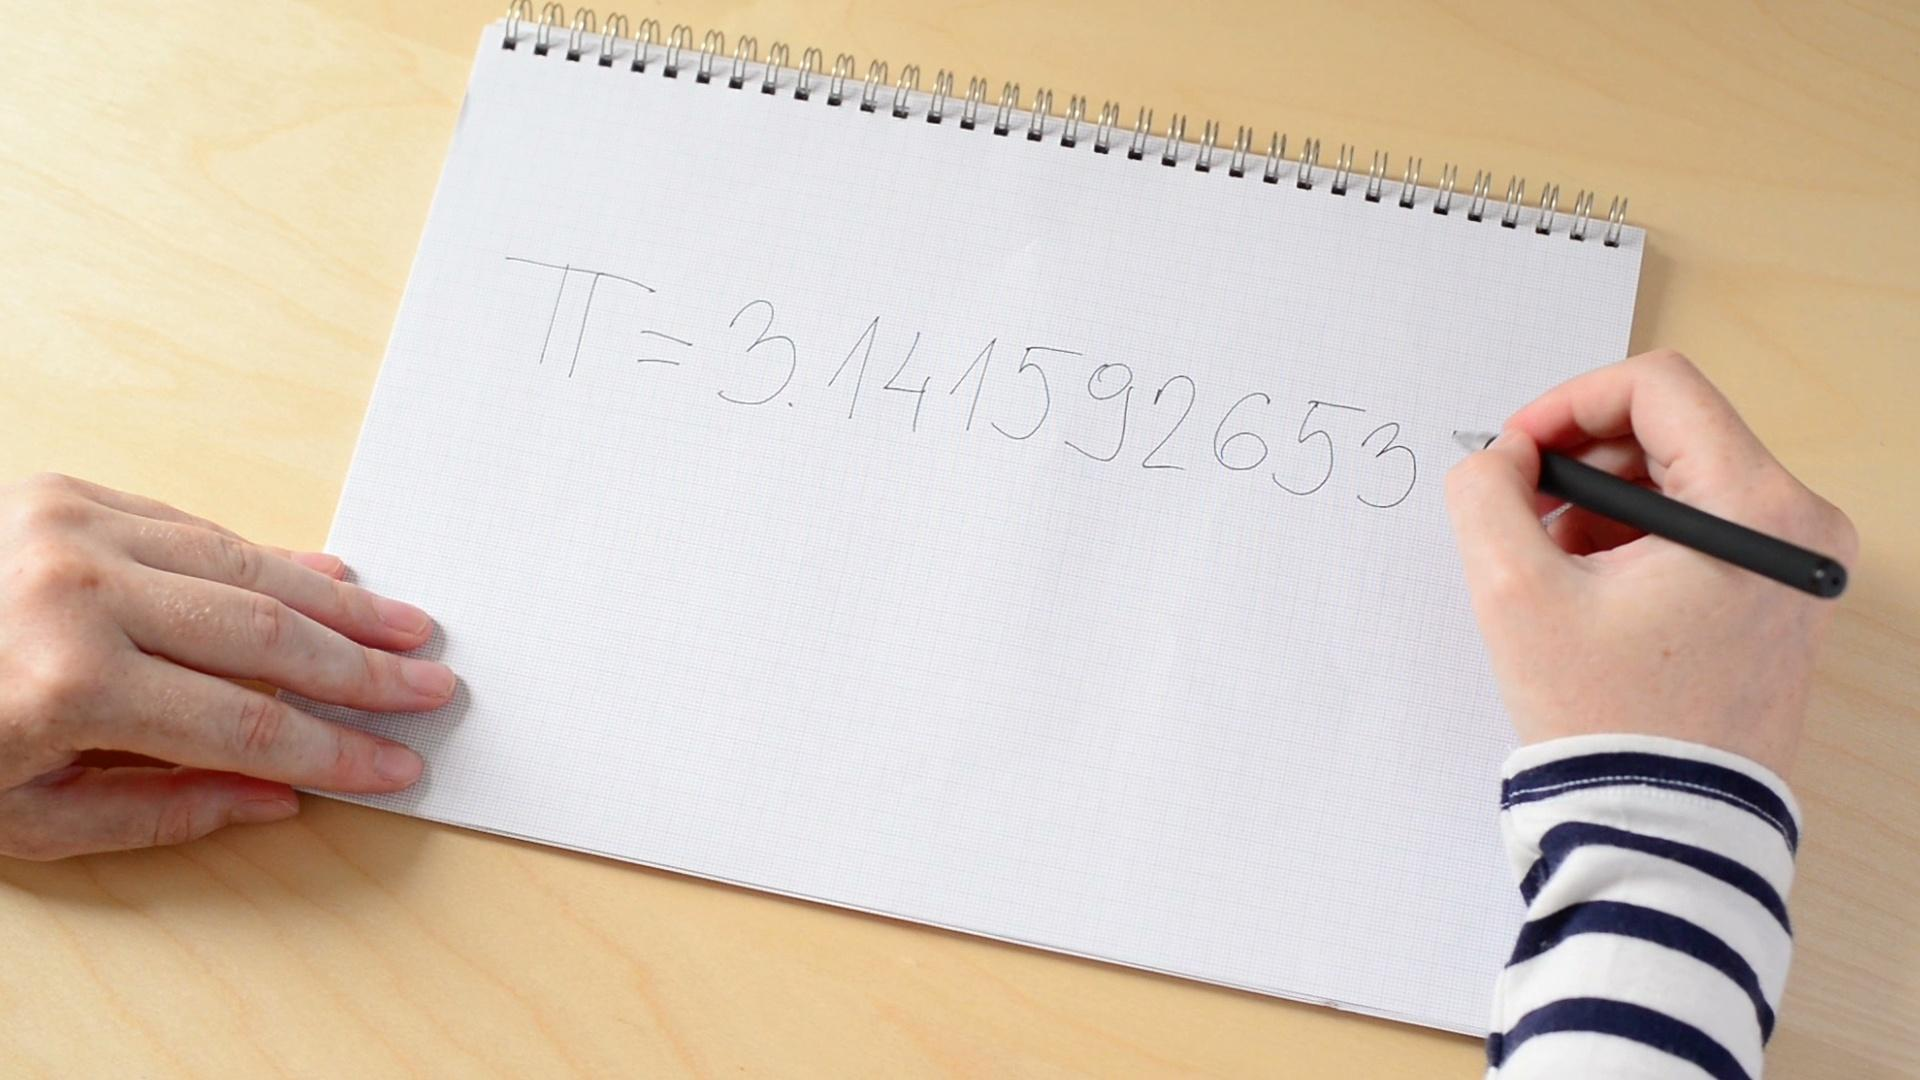 Celebrate Pi Day With Math (Not Pie)